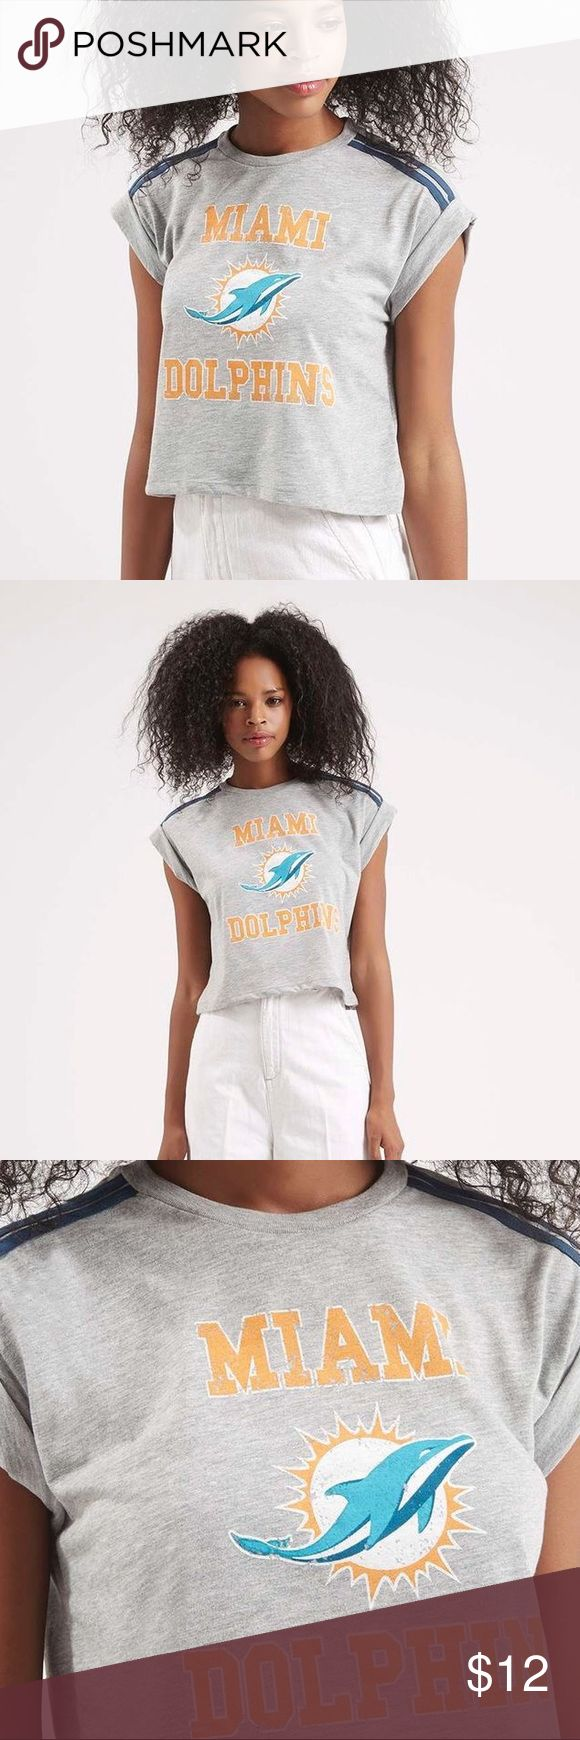 Tee & Cake Top Shop Miami Dolphins Crop Top NWOT Grey Miami Dolphins Tee & Cake Top Shop crop top. US size 12. Perfect with jean shorts and your favorite pair of Converse. 70% Polyester 30% Cotton machine wash Tee & Cake Top Shop Tops Crop Tops